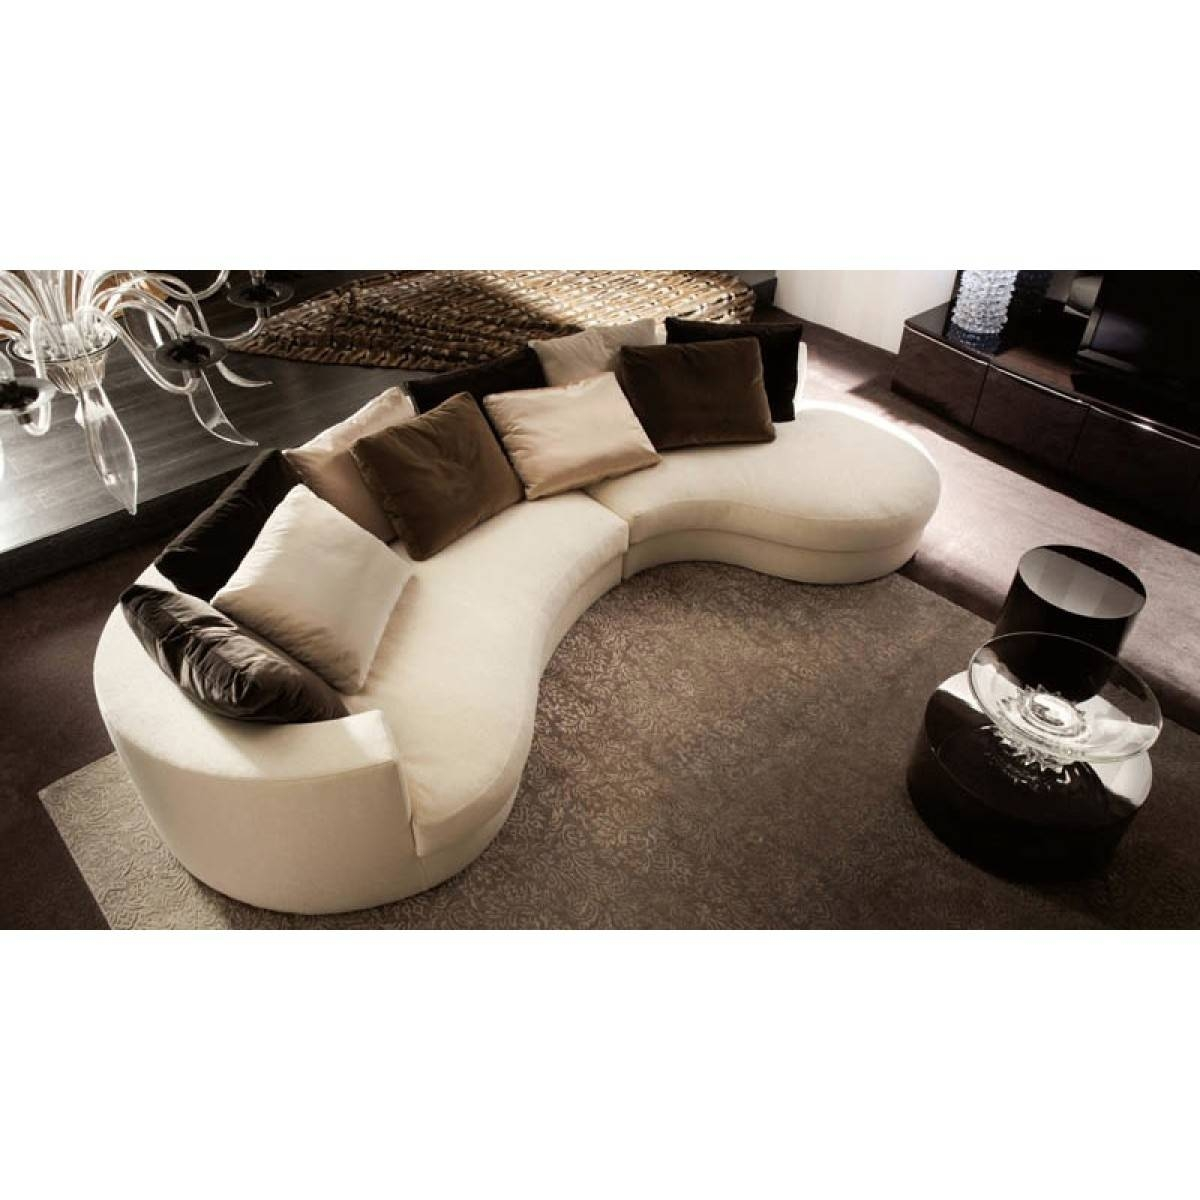 Living Room: Curved Sectional | Semi Circular Sofas | Circular Sofas inside Semi Circular Sectional Sofas (Image 11 of 15)